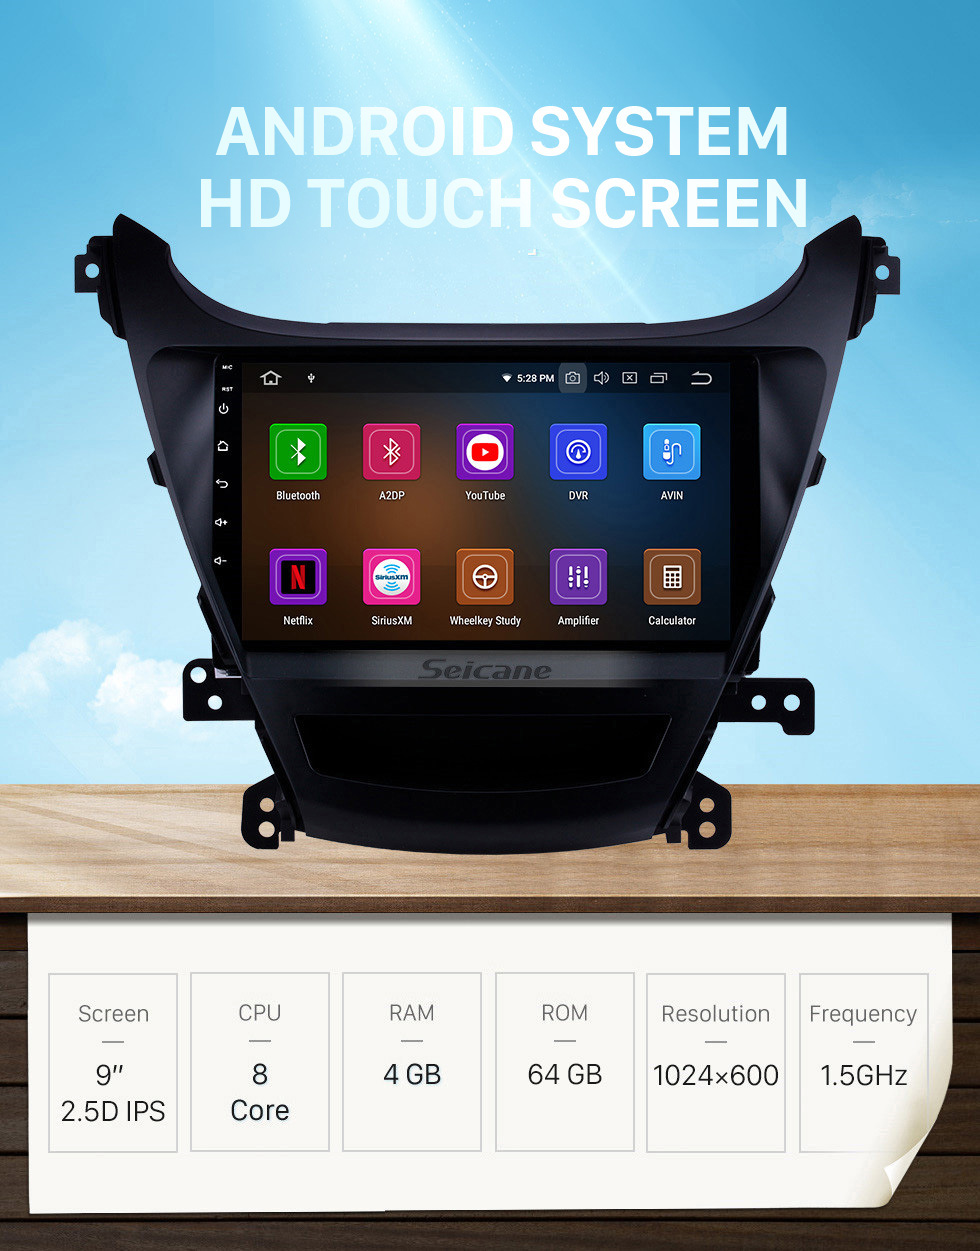 Seicane 9 inch Android 10.0 HD Touch Screen Radio for 2014-2015 Hyundai Elantra with GPS Navigation system Bluetooth USB WIFI OBD2 TPMS Mirror Link Rearview Camera